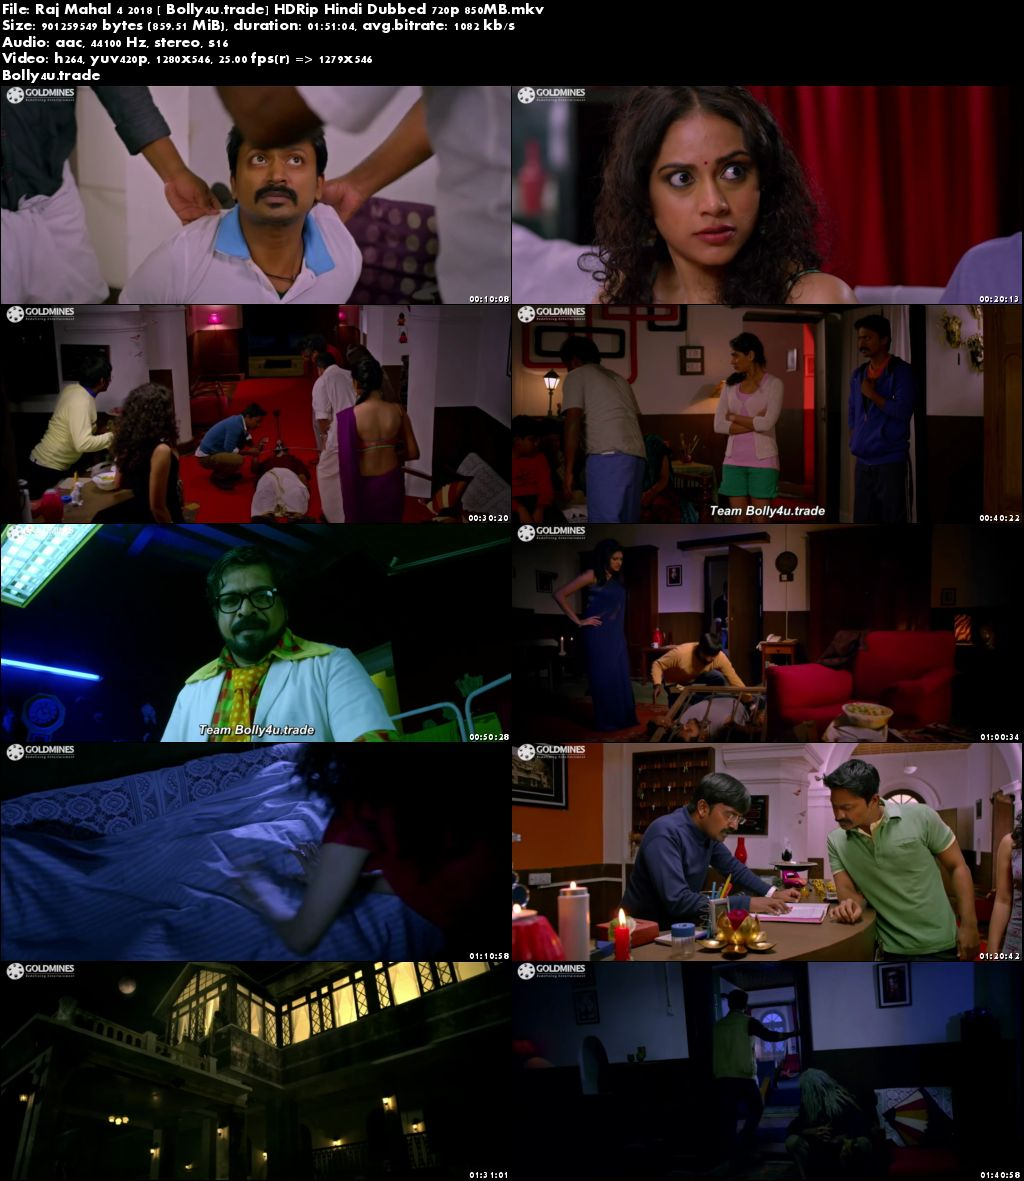 Raj Mahal 4 2018 HDRip 850Mb Full Hindi Dubbed Movie Download 720p